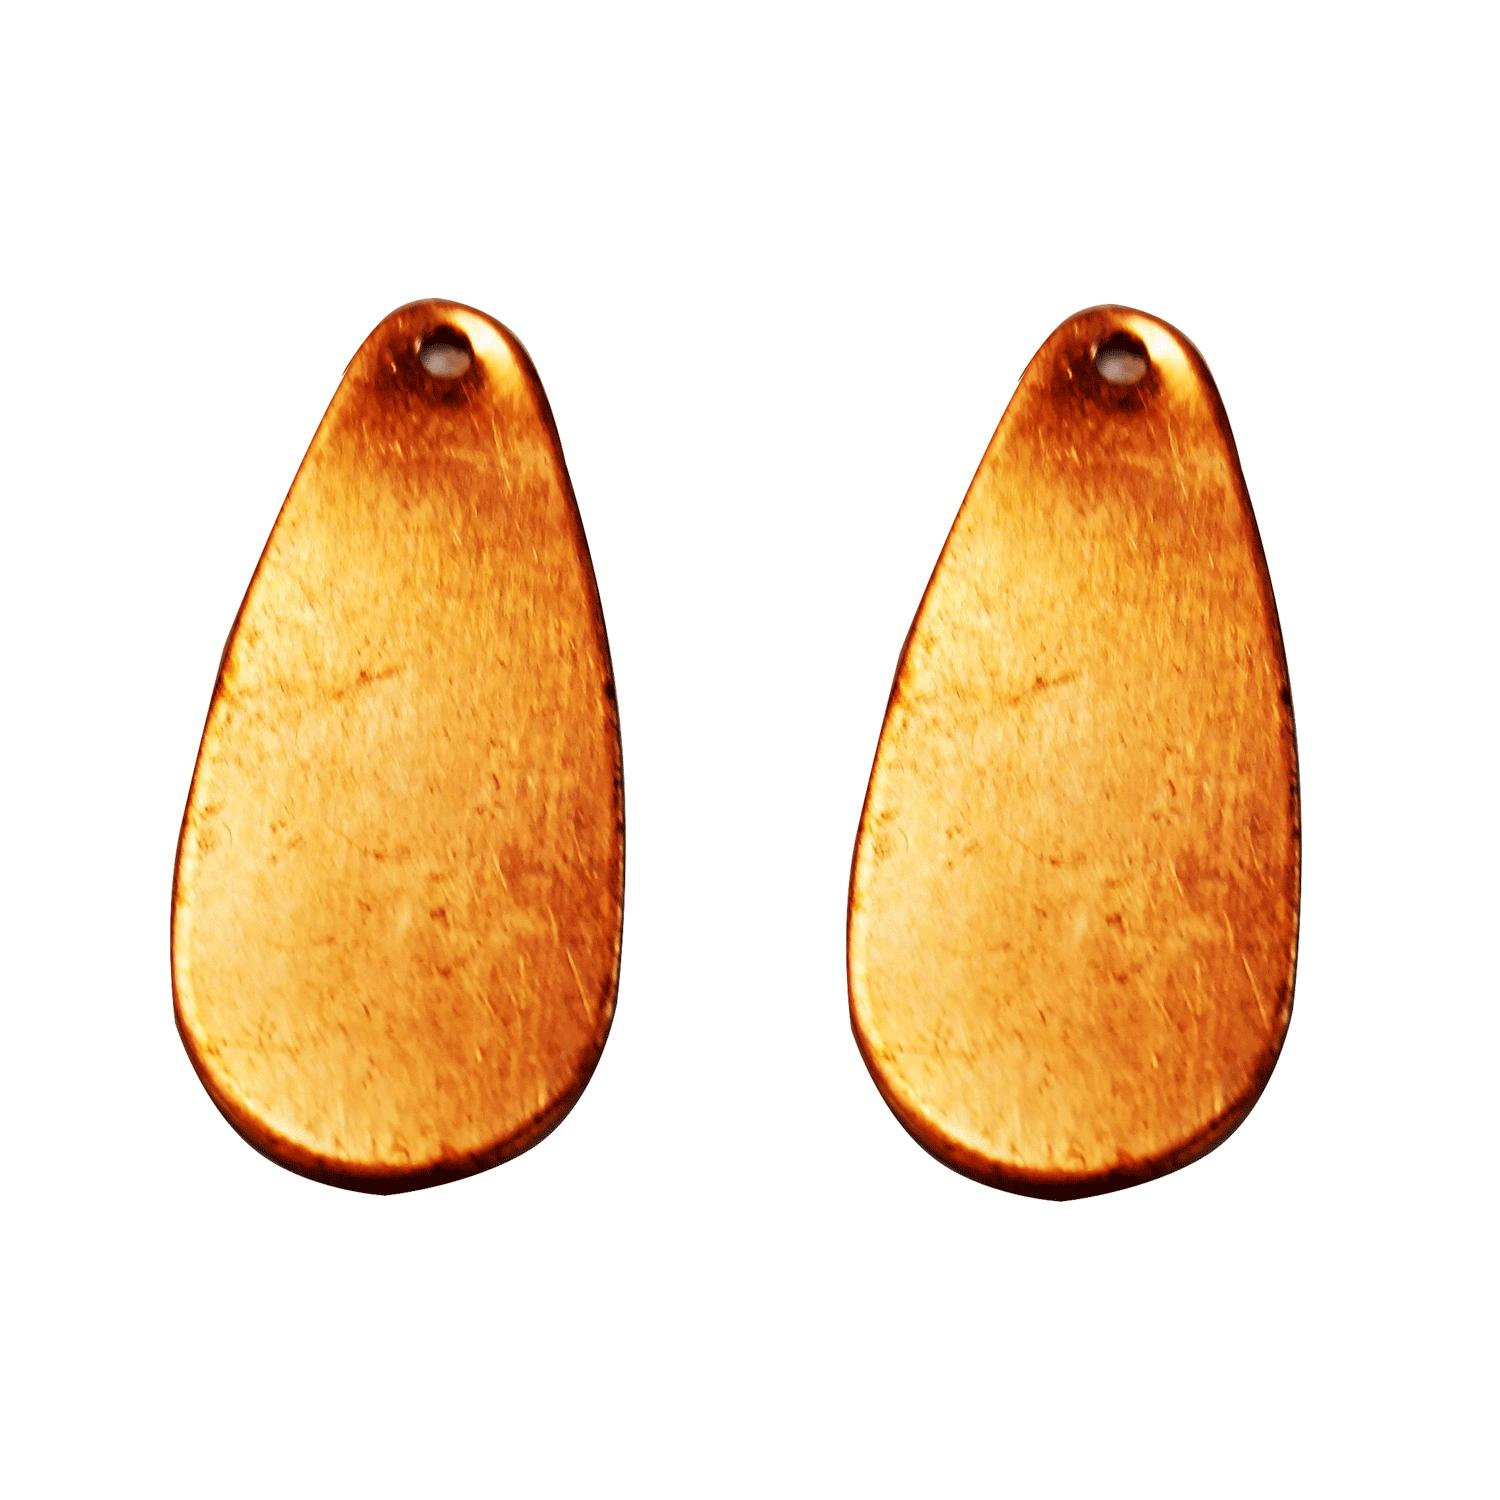 Teardrop Copper Shape with Hole - 2 Pack